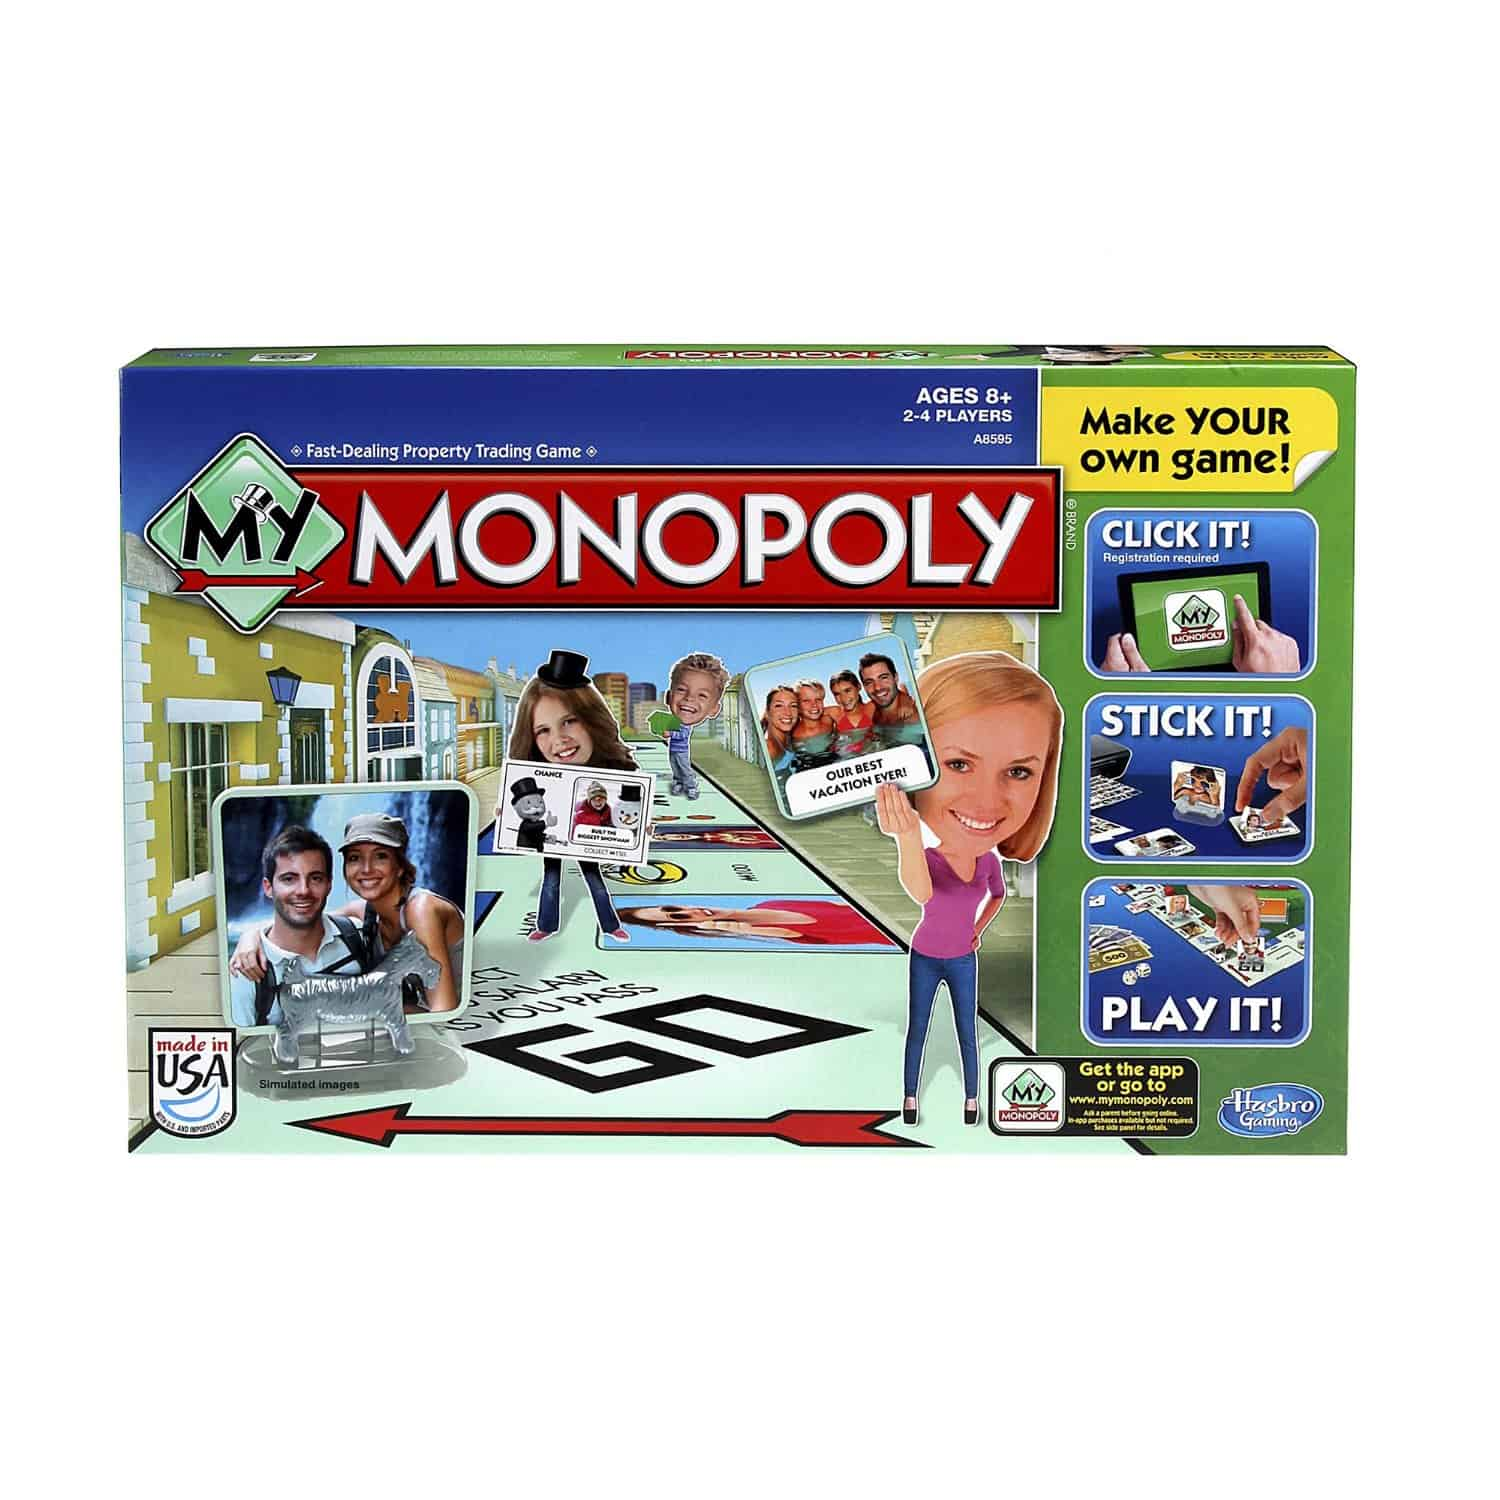 REVIEW: My Monopoly